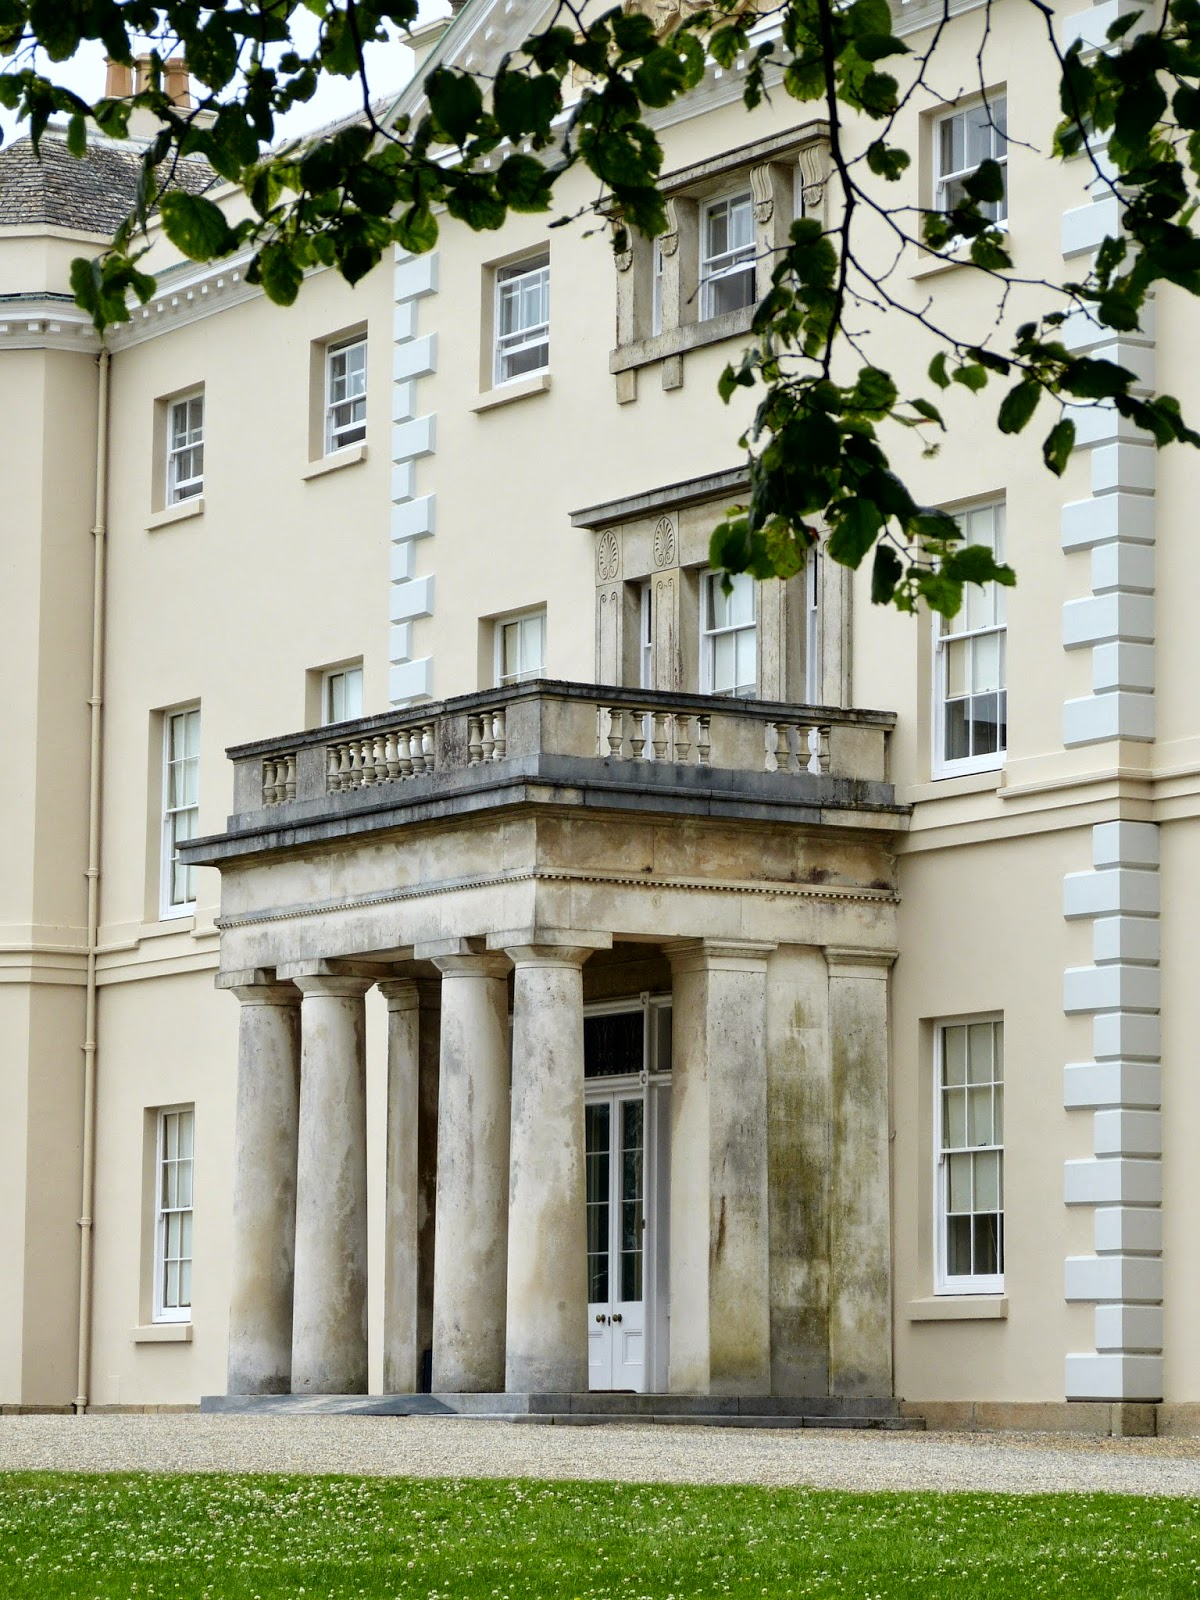 The entrance to Saltram House